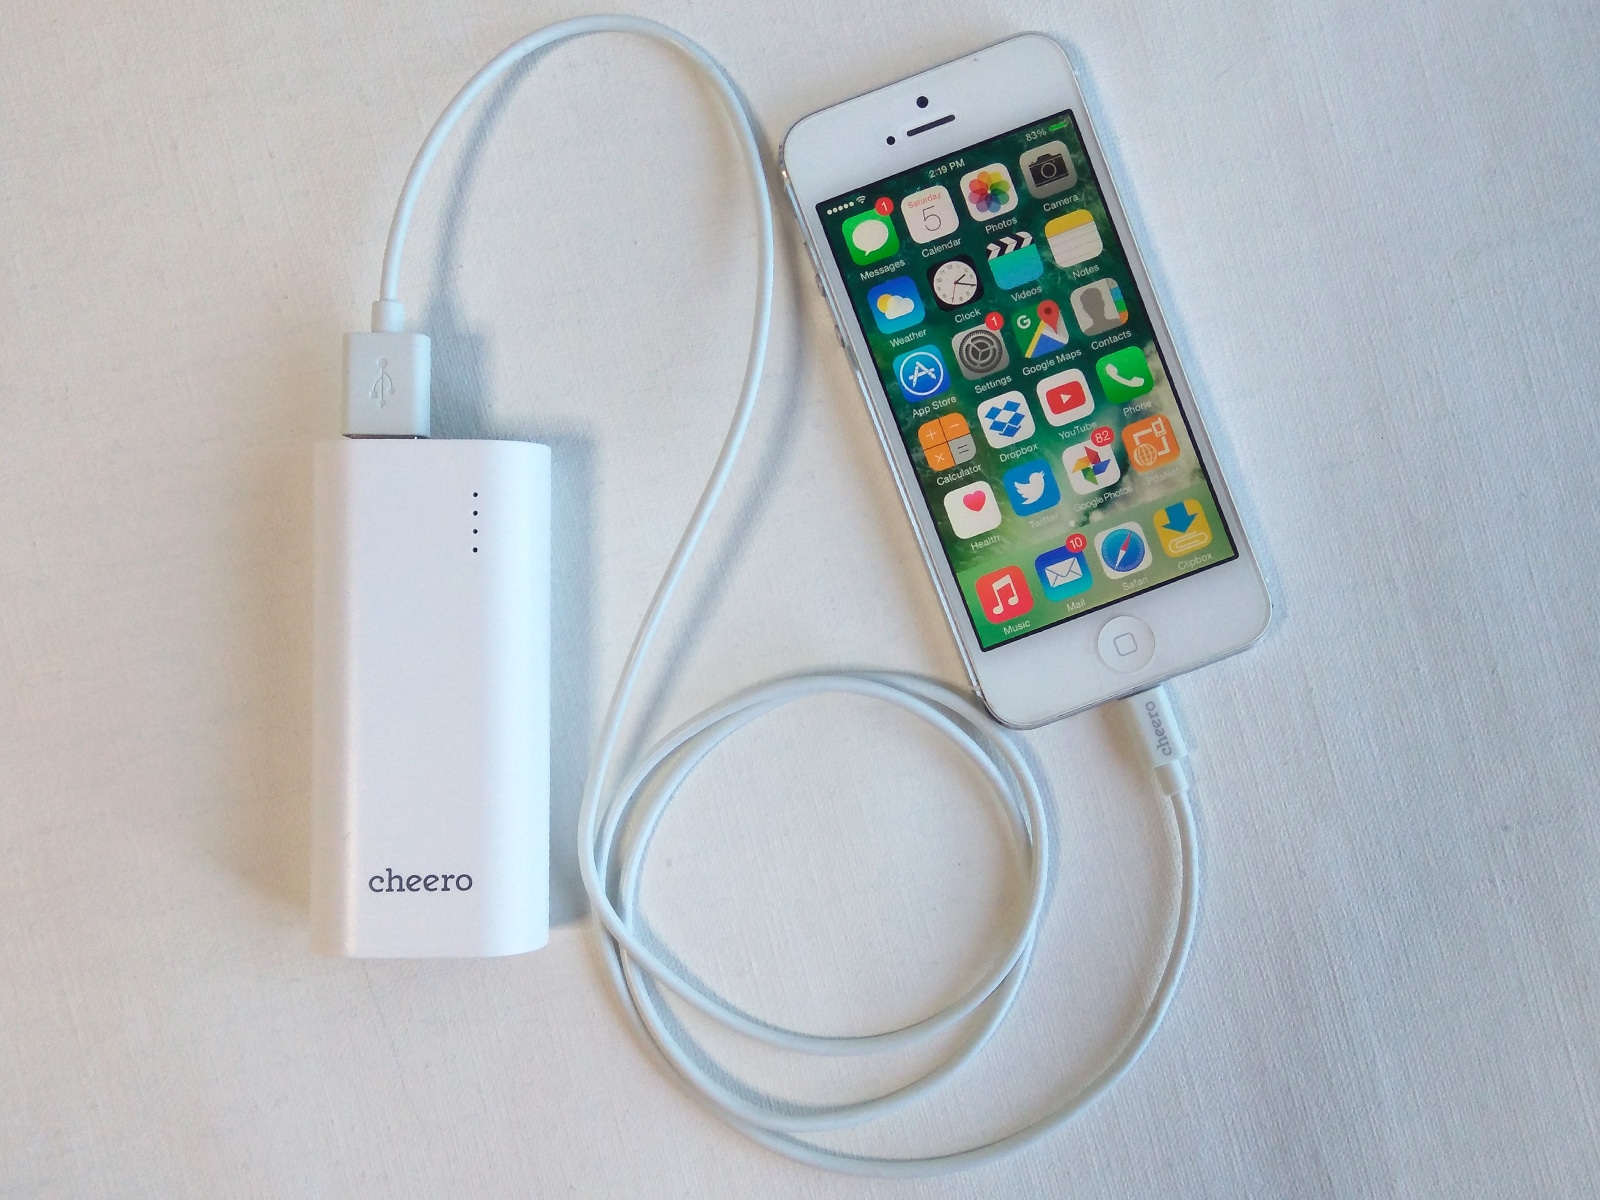 cheero Power Plus 3 mini 5200mAh iPhoneを充電